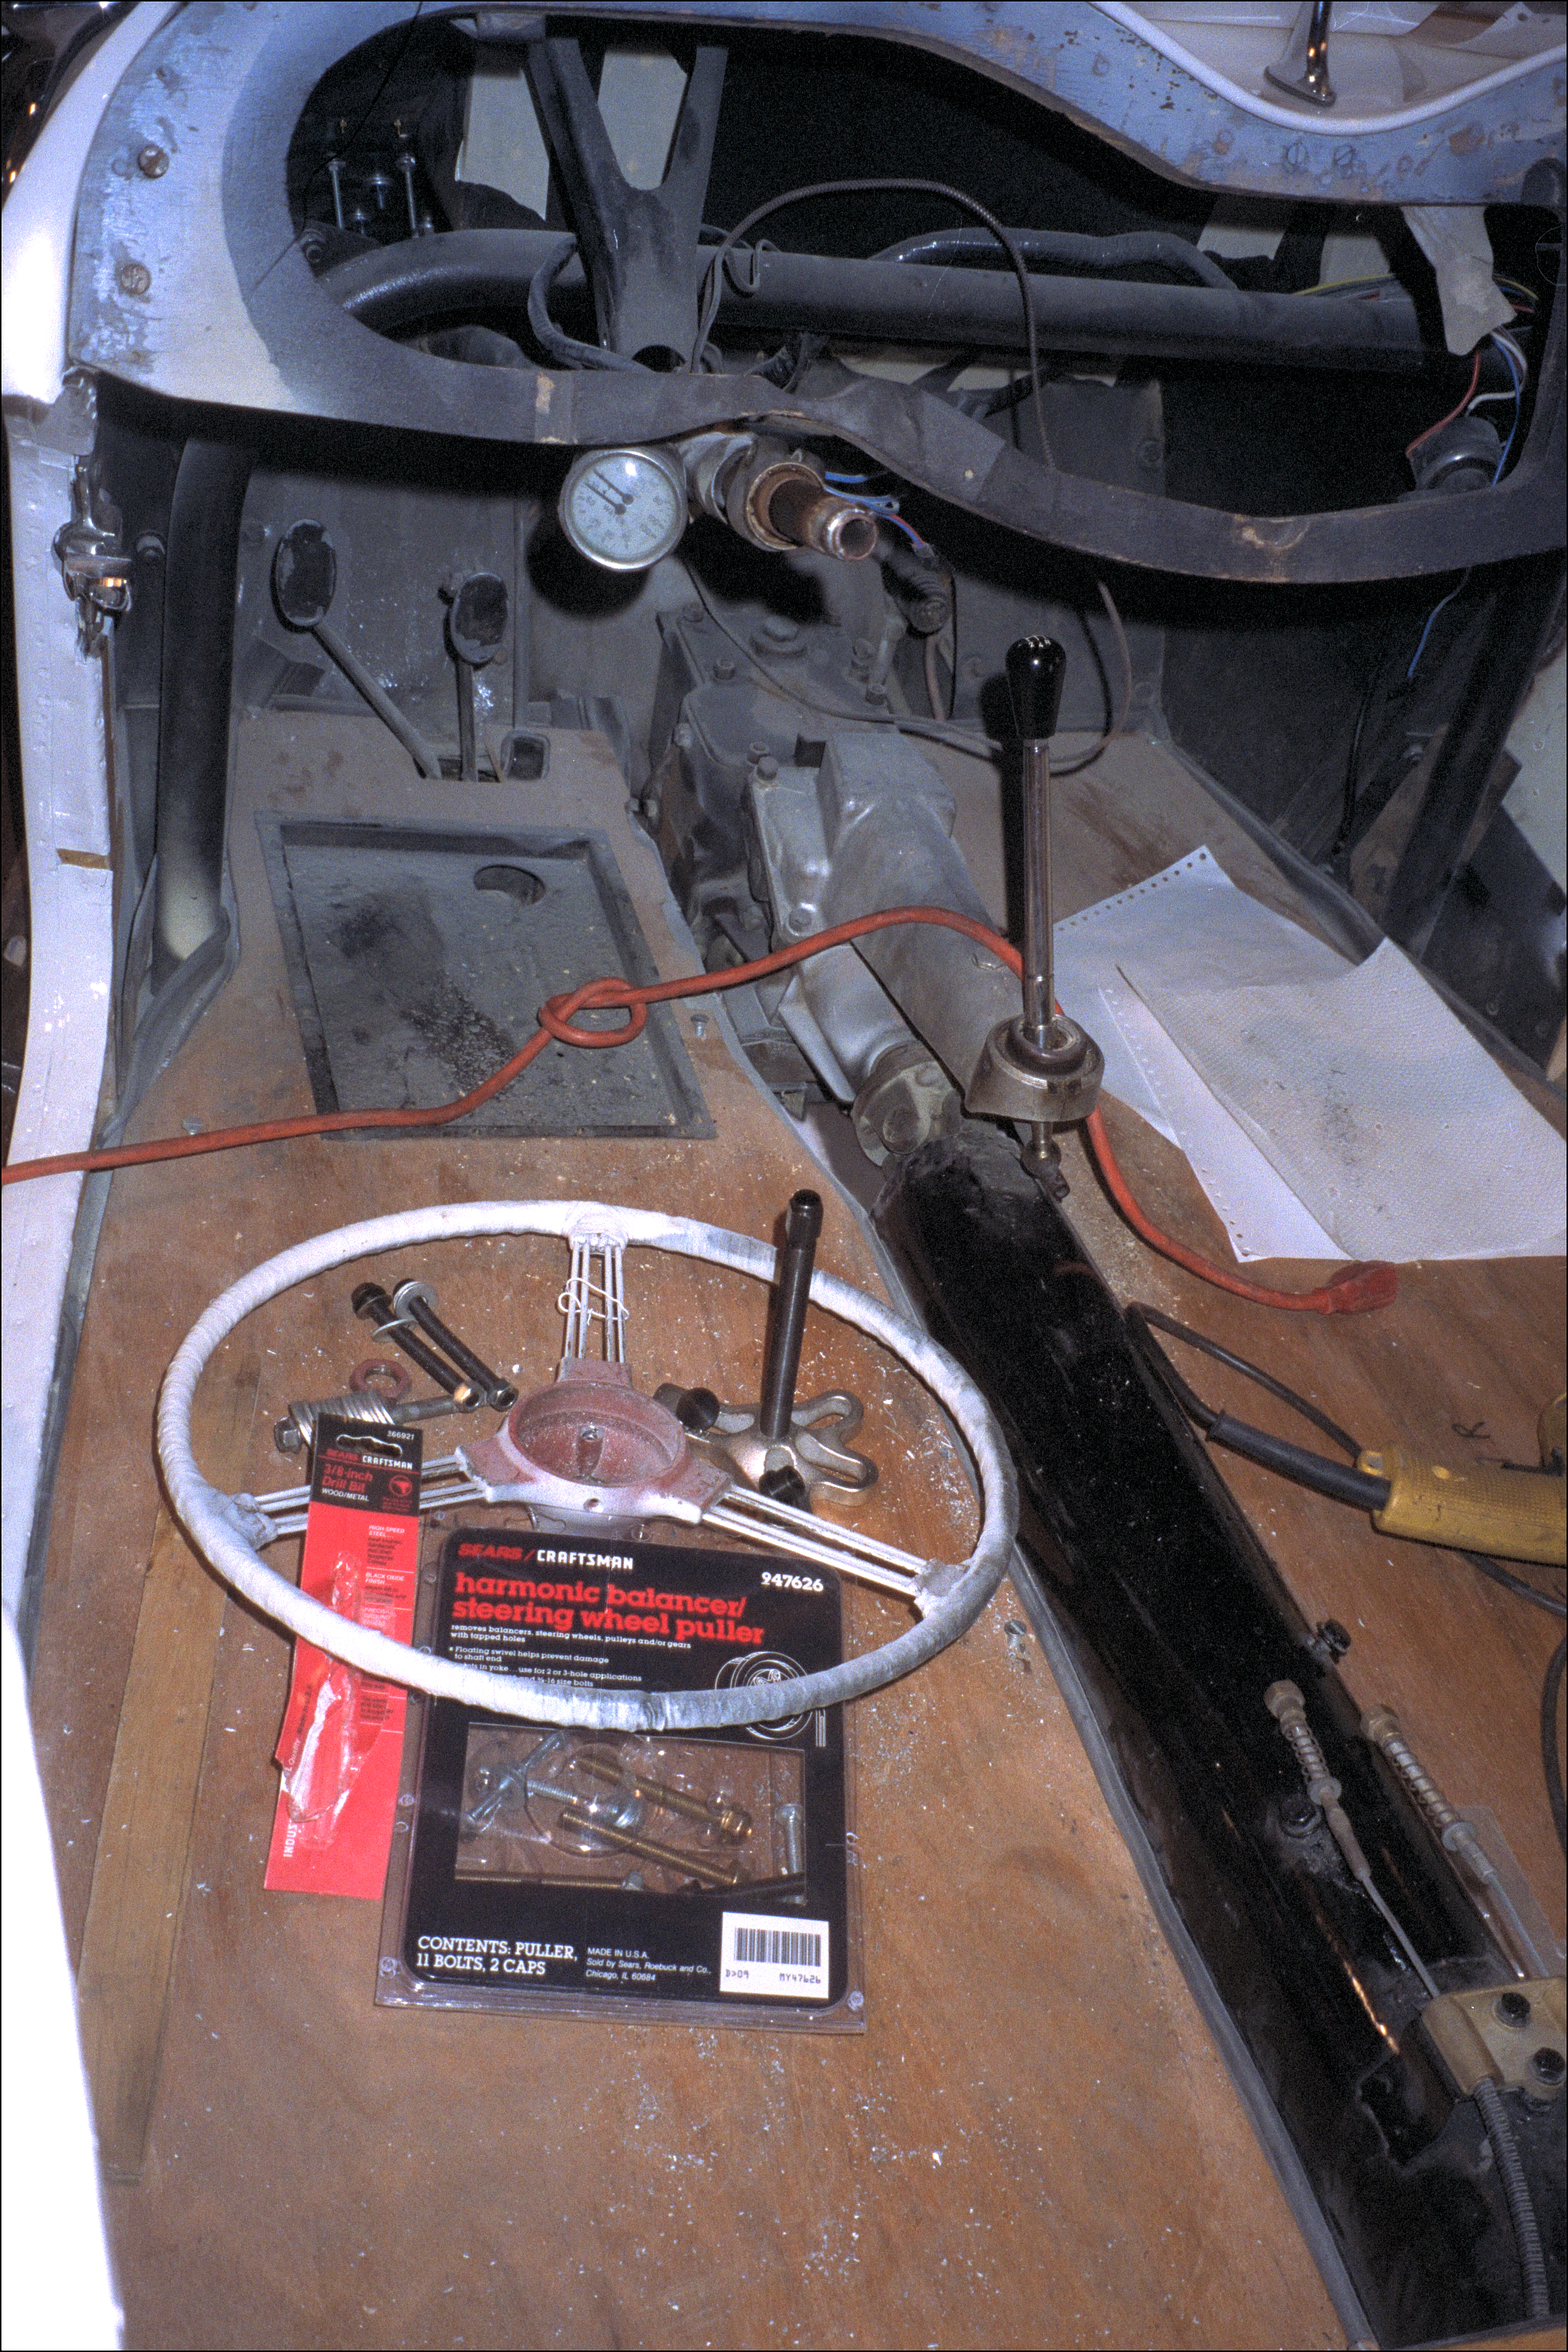 The removed steering wheel